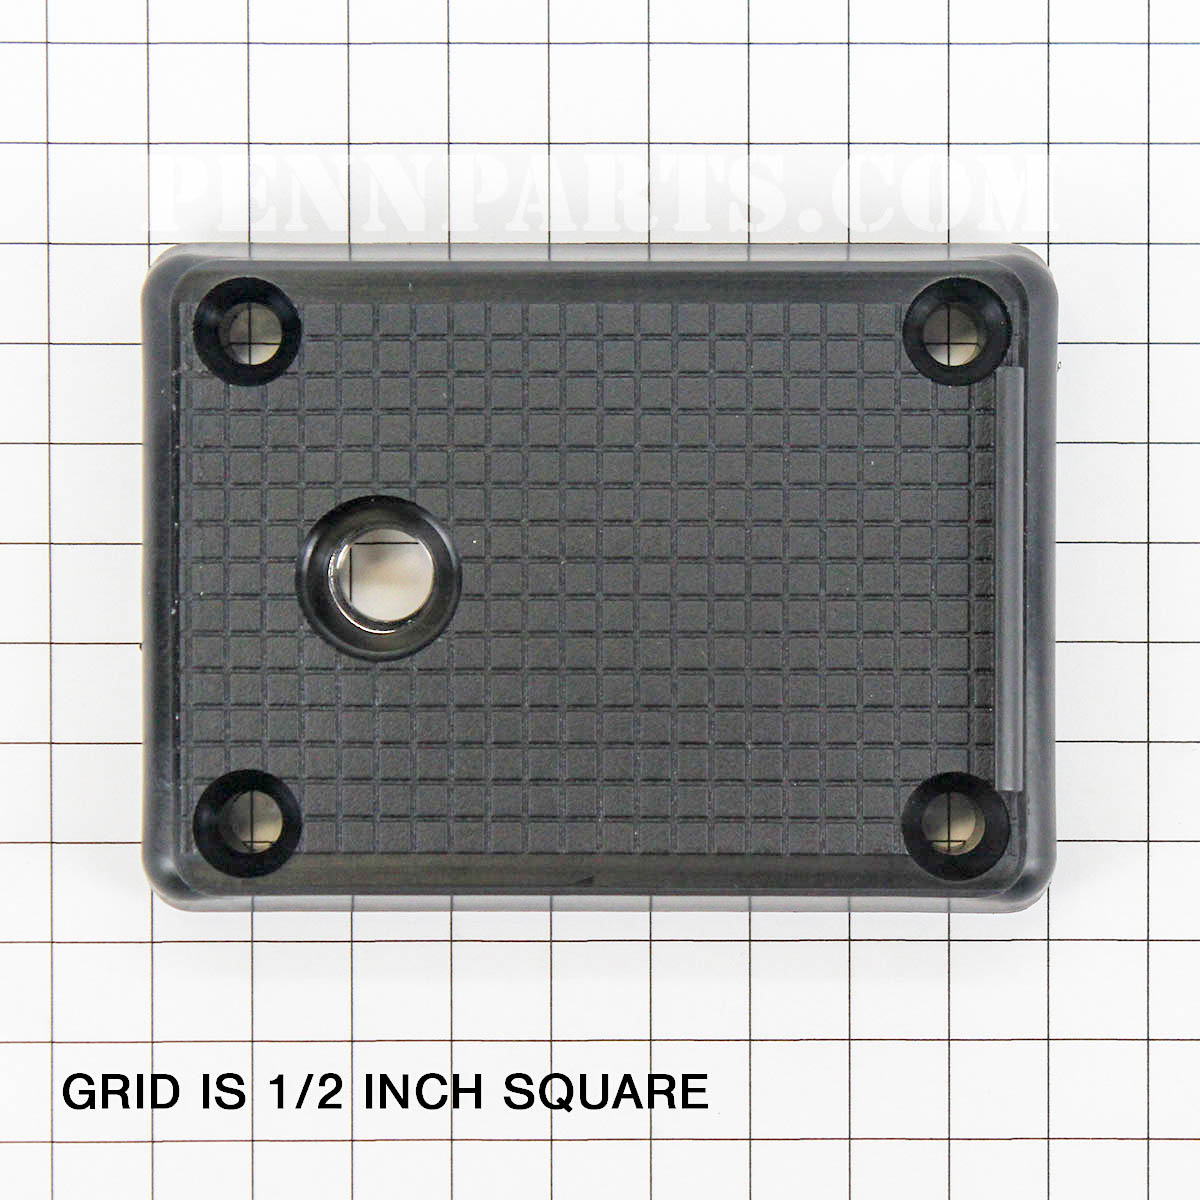 133-600 | DSP-S11001 Base Plate and Nut ONLY